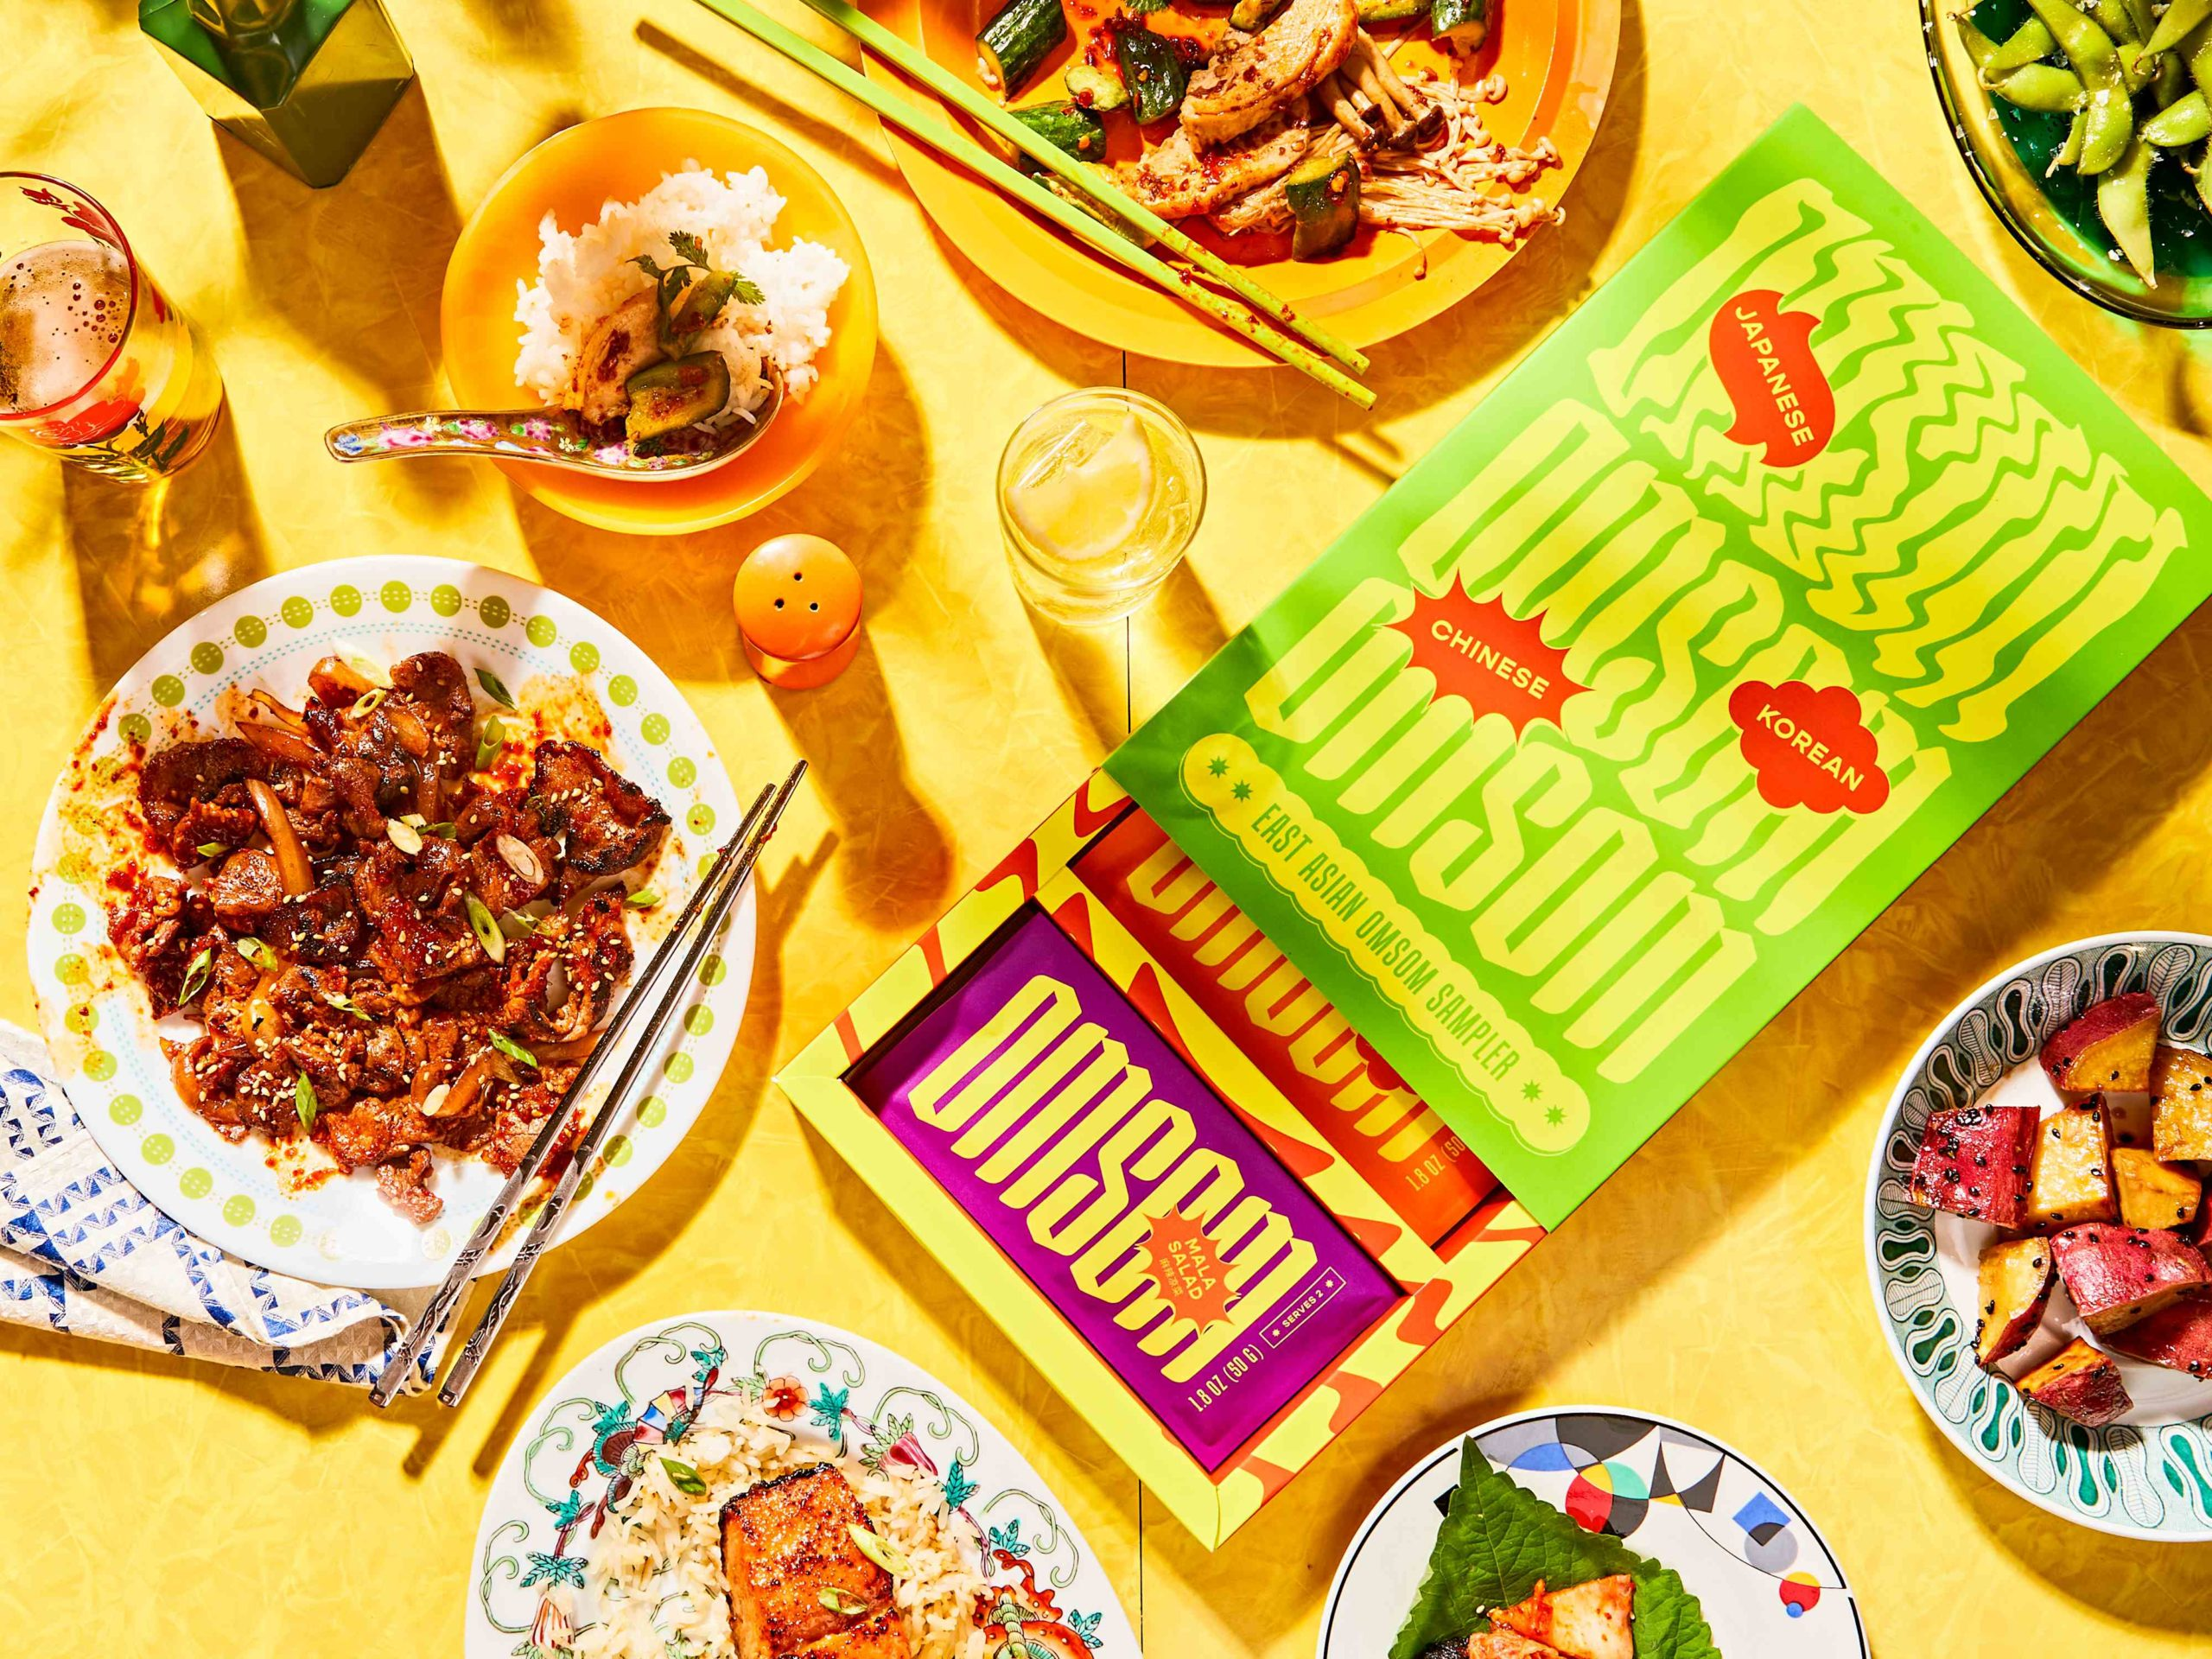 Omsom products are designed to help people easily prepare elaborate Asian dishes.